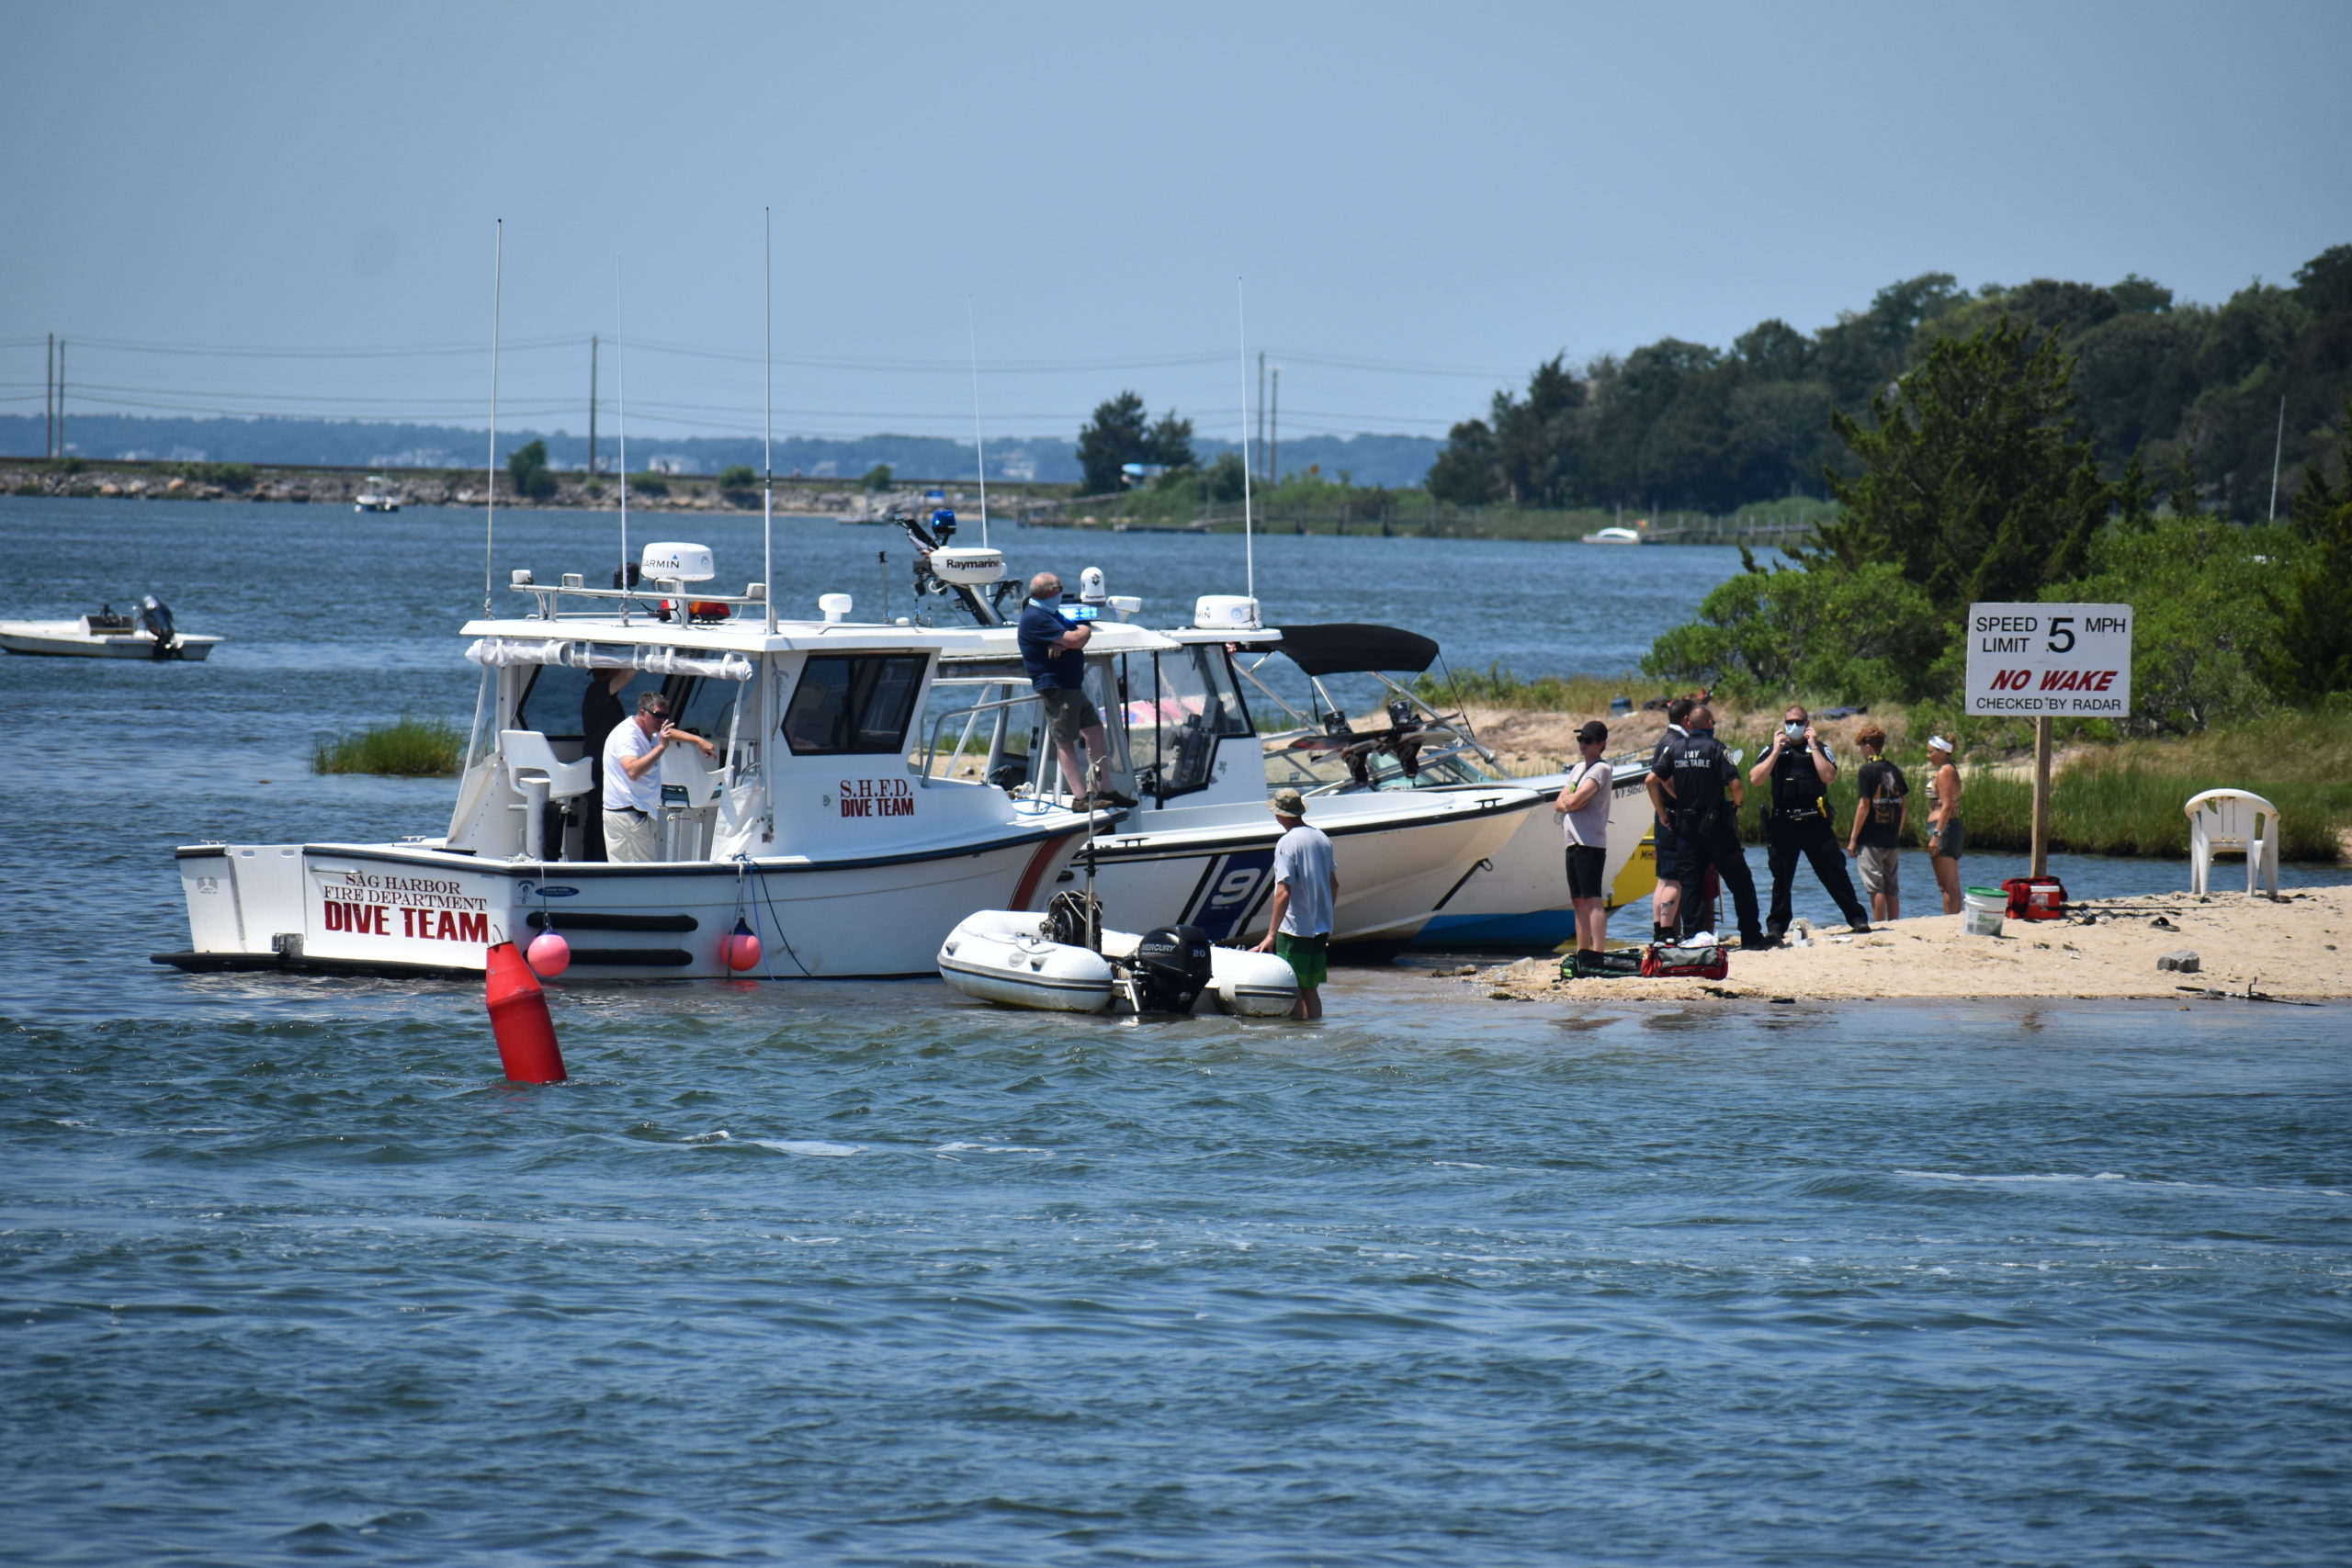 The Sag Harbor Fire Department dive team was on the scene. STEPHEN KOTZ